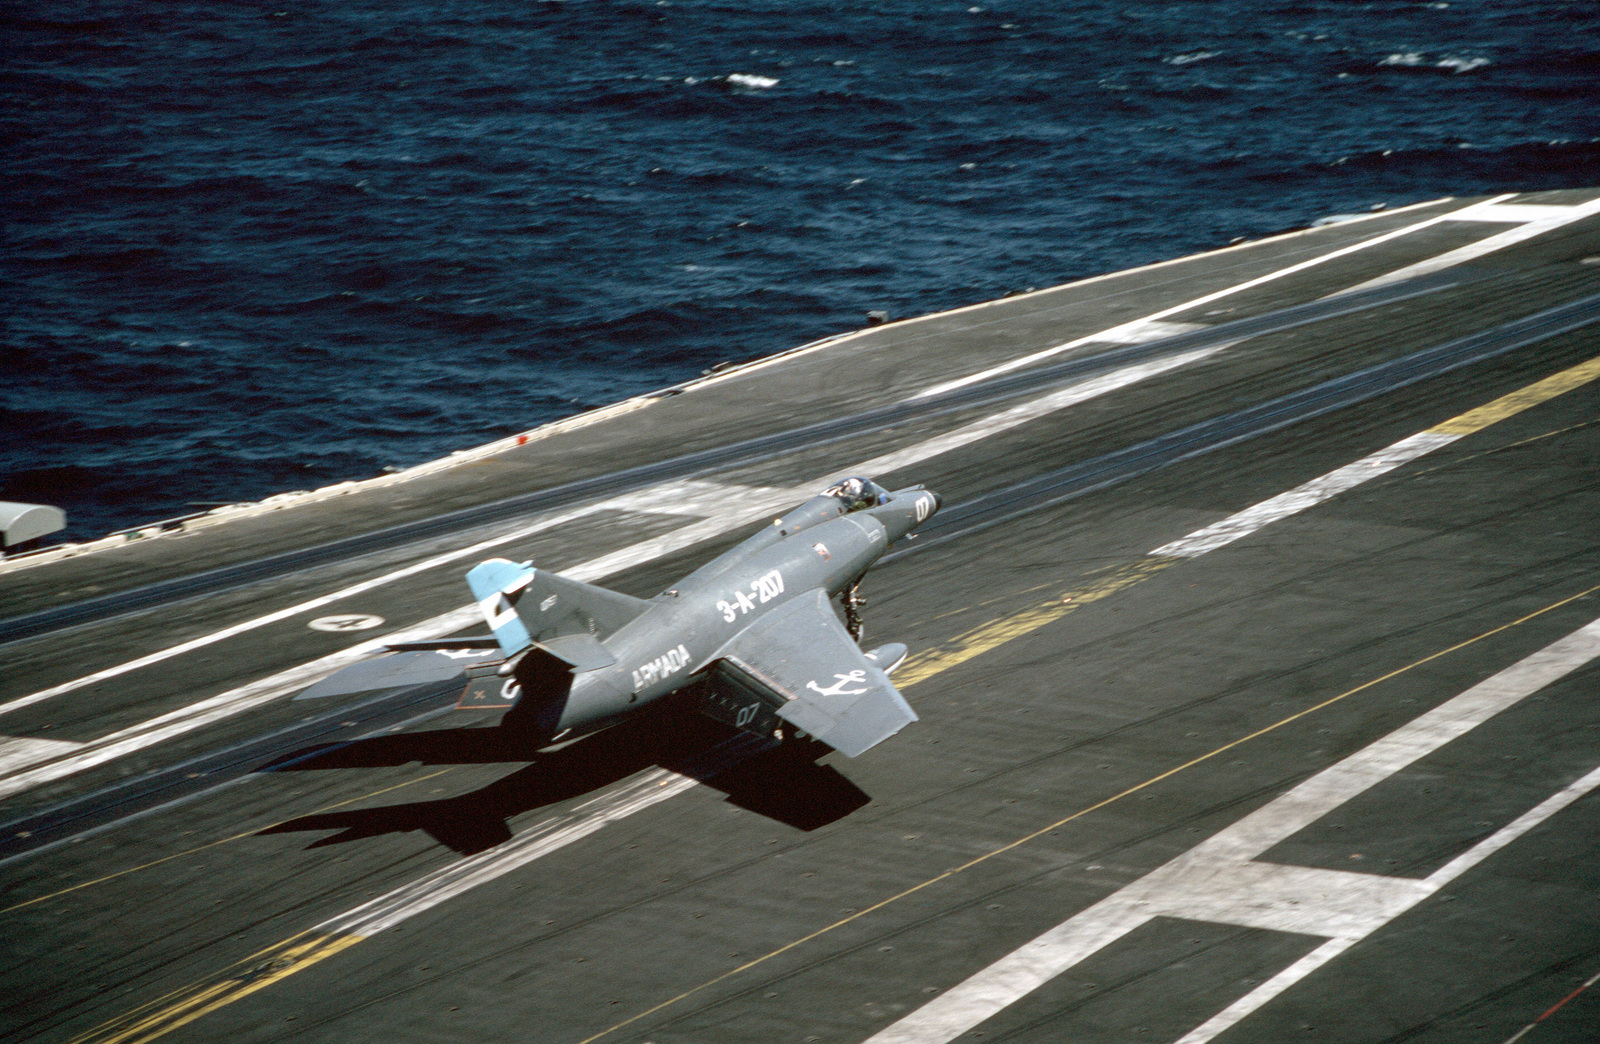 A Super Etendard aircraft of the Argentine navy briefly touches down on the flight deck of the nuclear-powered aircraft carrier USS ABRAHAM LINCOLN (CVN-72). The plane is taking part in touch-and-go landing aboard the LINCOLN during the vessel's circumnavigation of South America